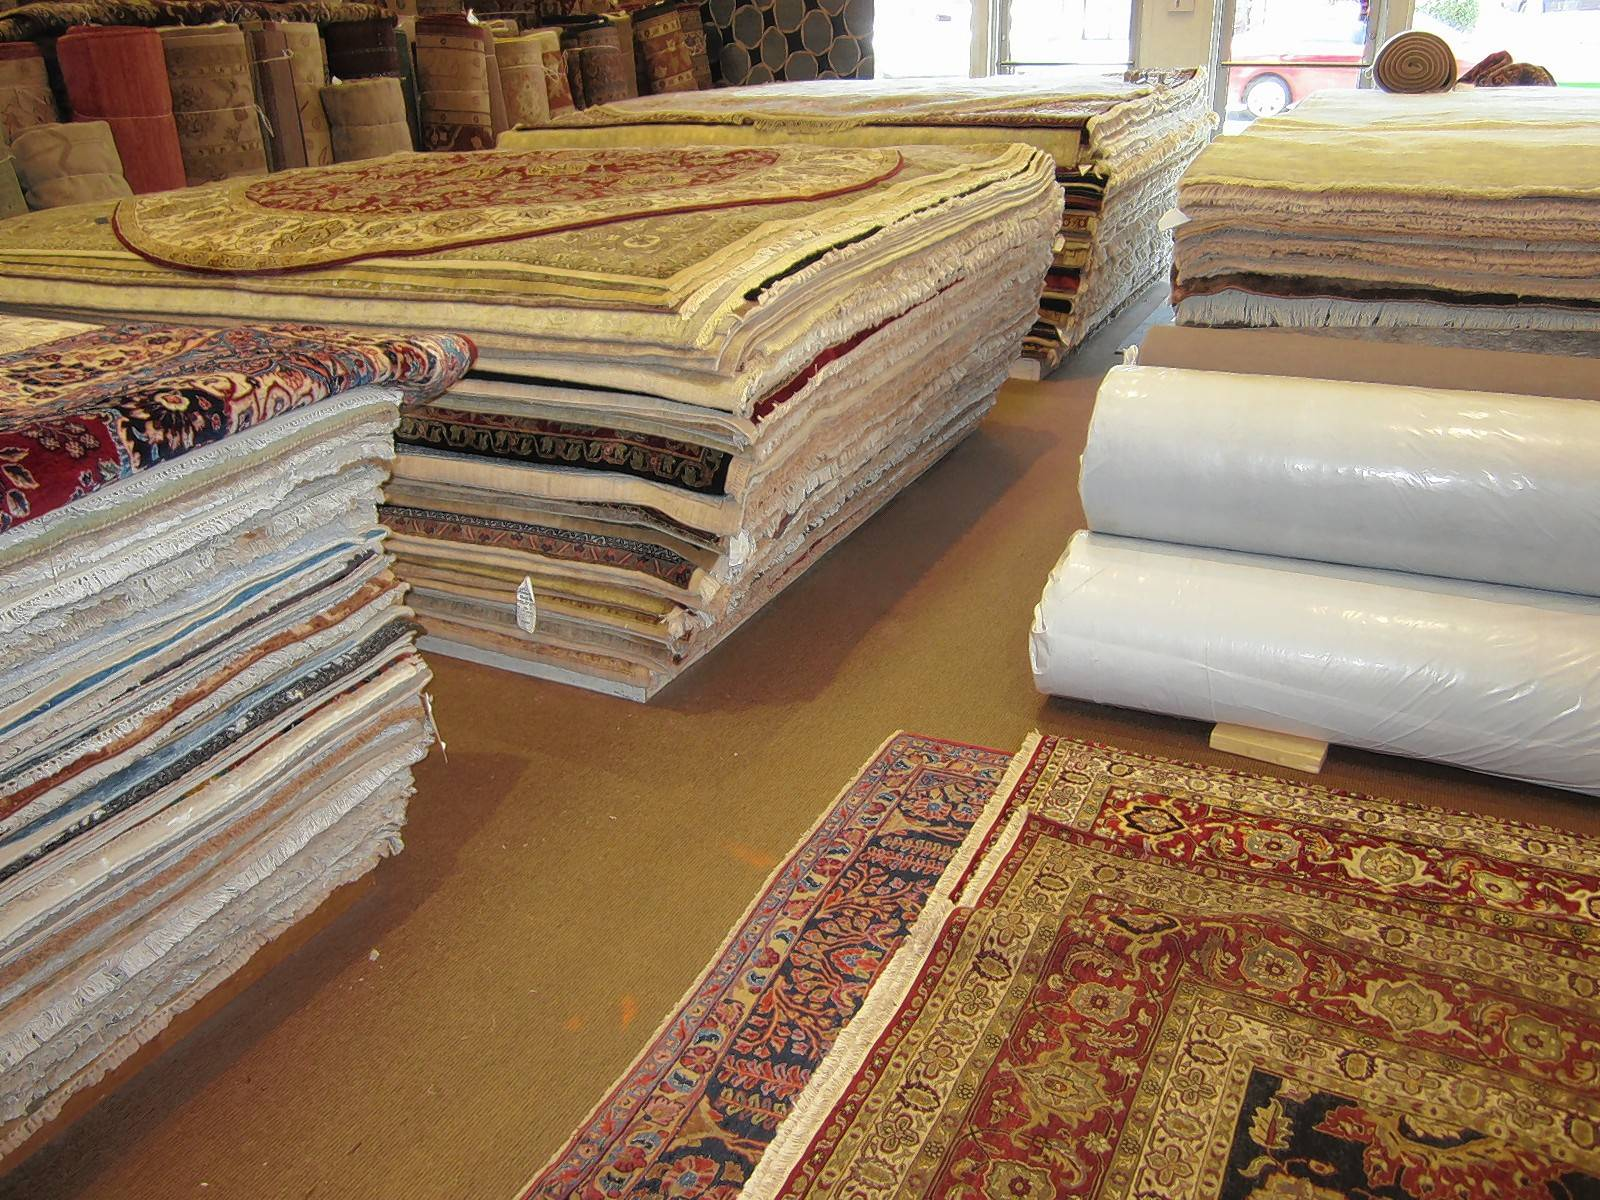 Rugport in Palatine stocks around 5,000 carpets at any given time.